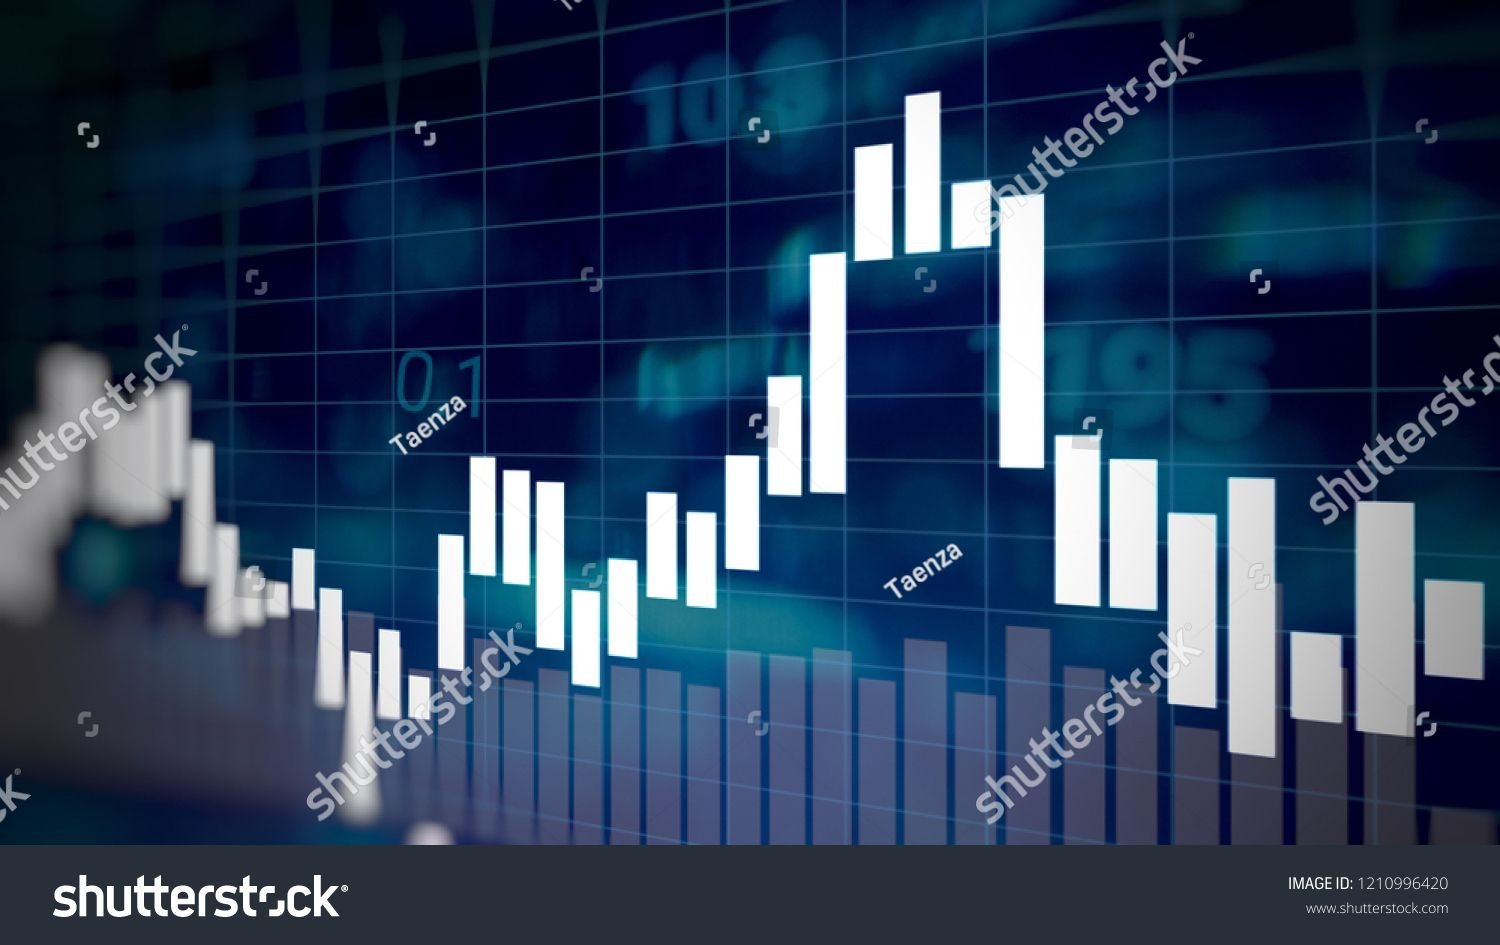 Candlesticks On Forex Business Candle Stick Graph Chart Of Stock